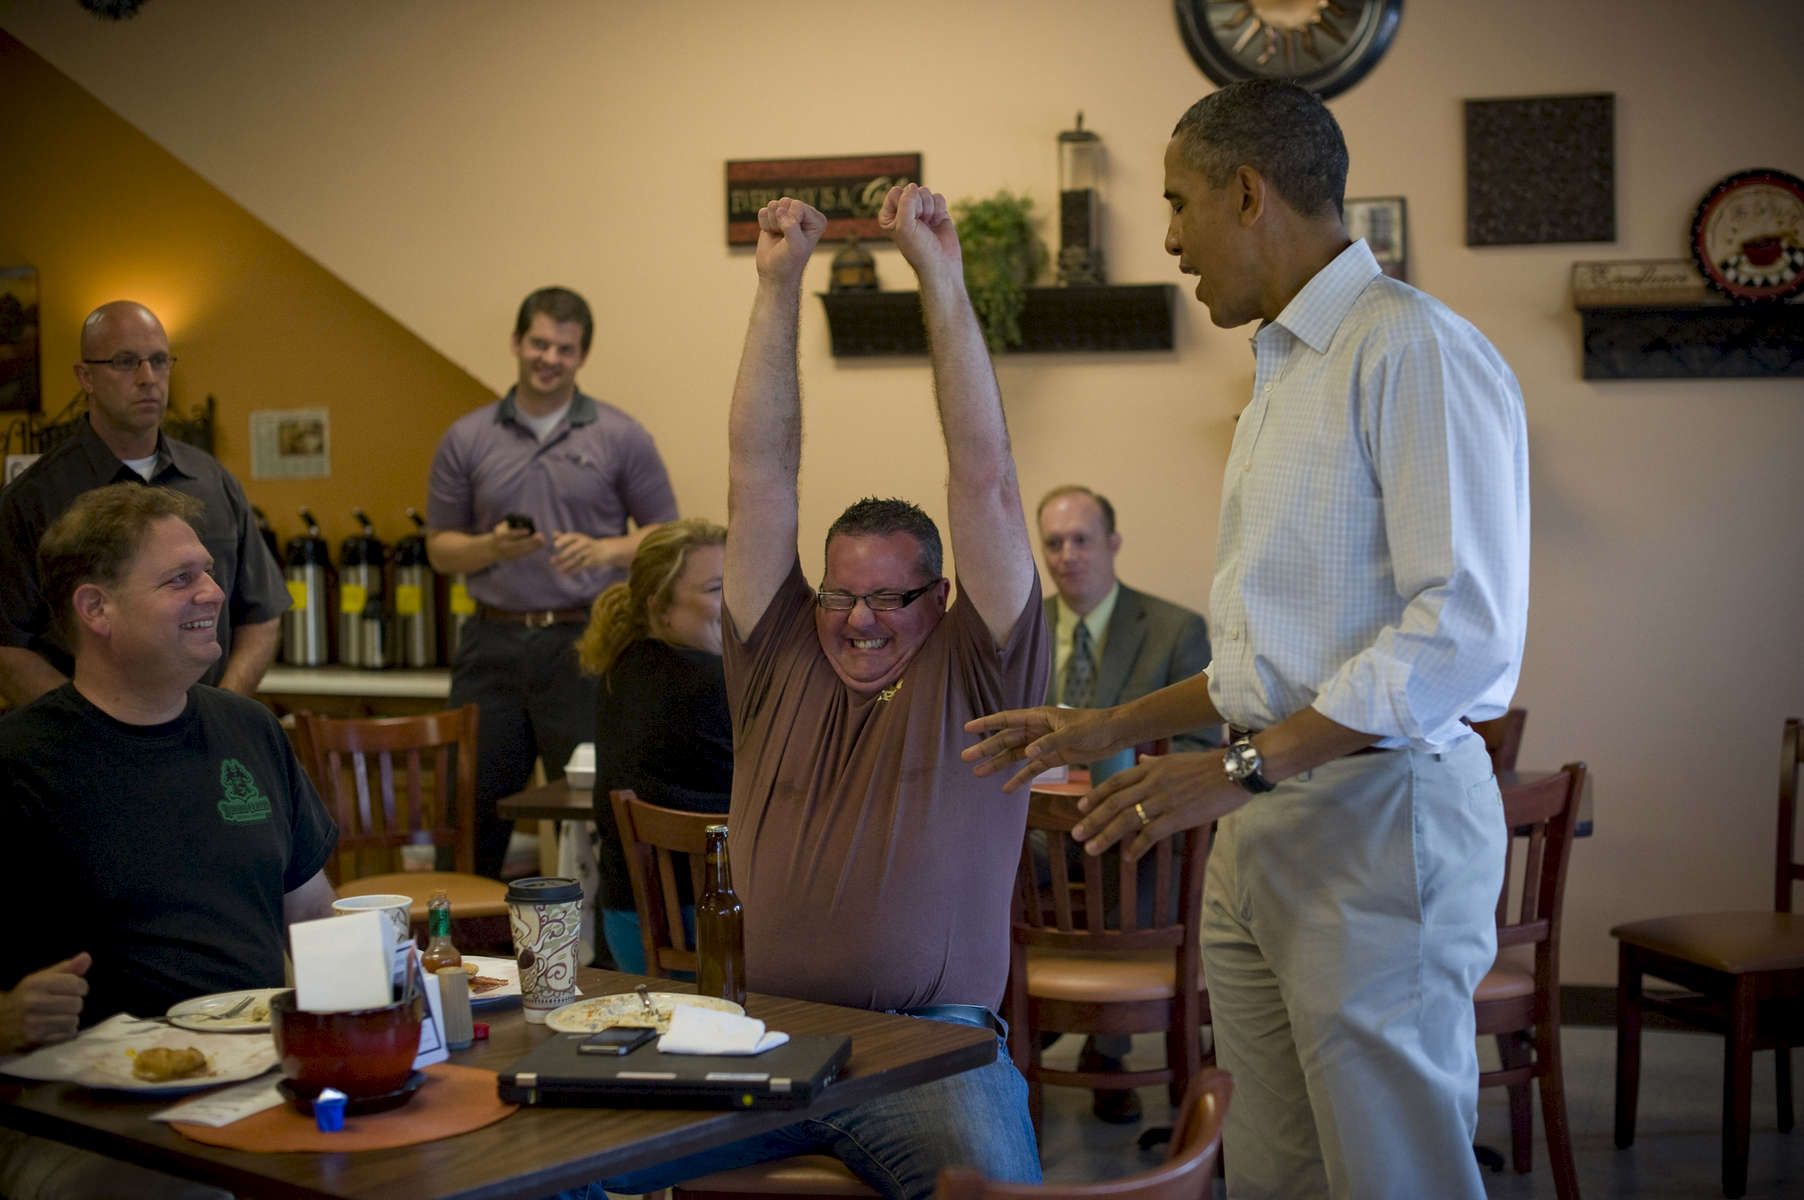 August 14, 2012- KNOXVILLE, IA: Brad Magerkurth, a traveling beer salesman from Minnesota, reacts as President Barack Obama presents him with a bottle of the White house home brewed beer in Knoxville, Iowa.  Magerkurth had stopped by the Coffee Connection in Knoxville while on a business trip and was shocked to find himself discussing beer with the President.  (Scout Tufankjian for Obama for America/Polaris)